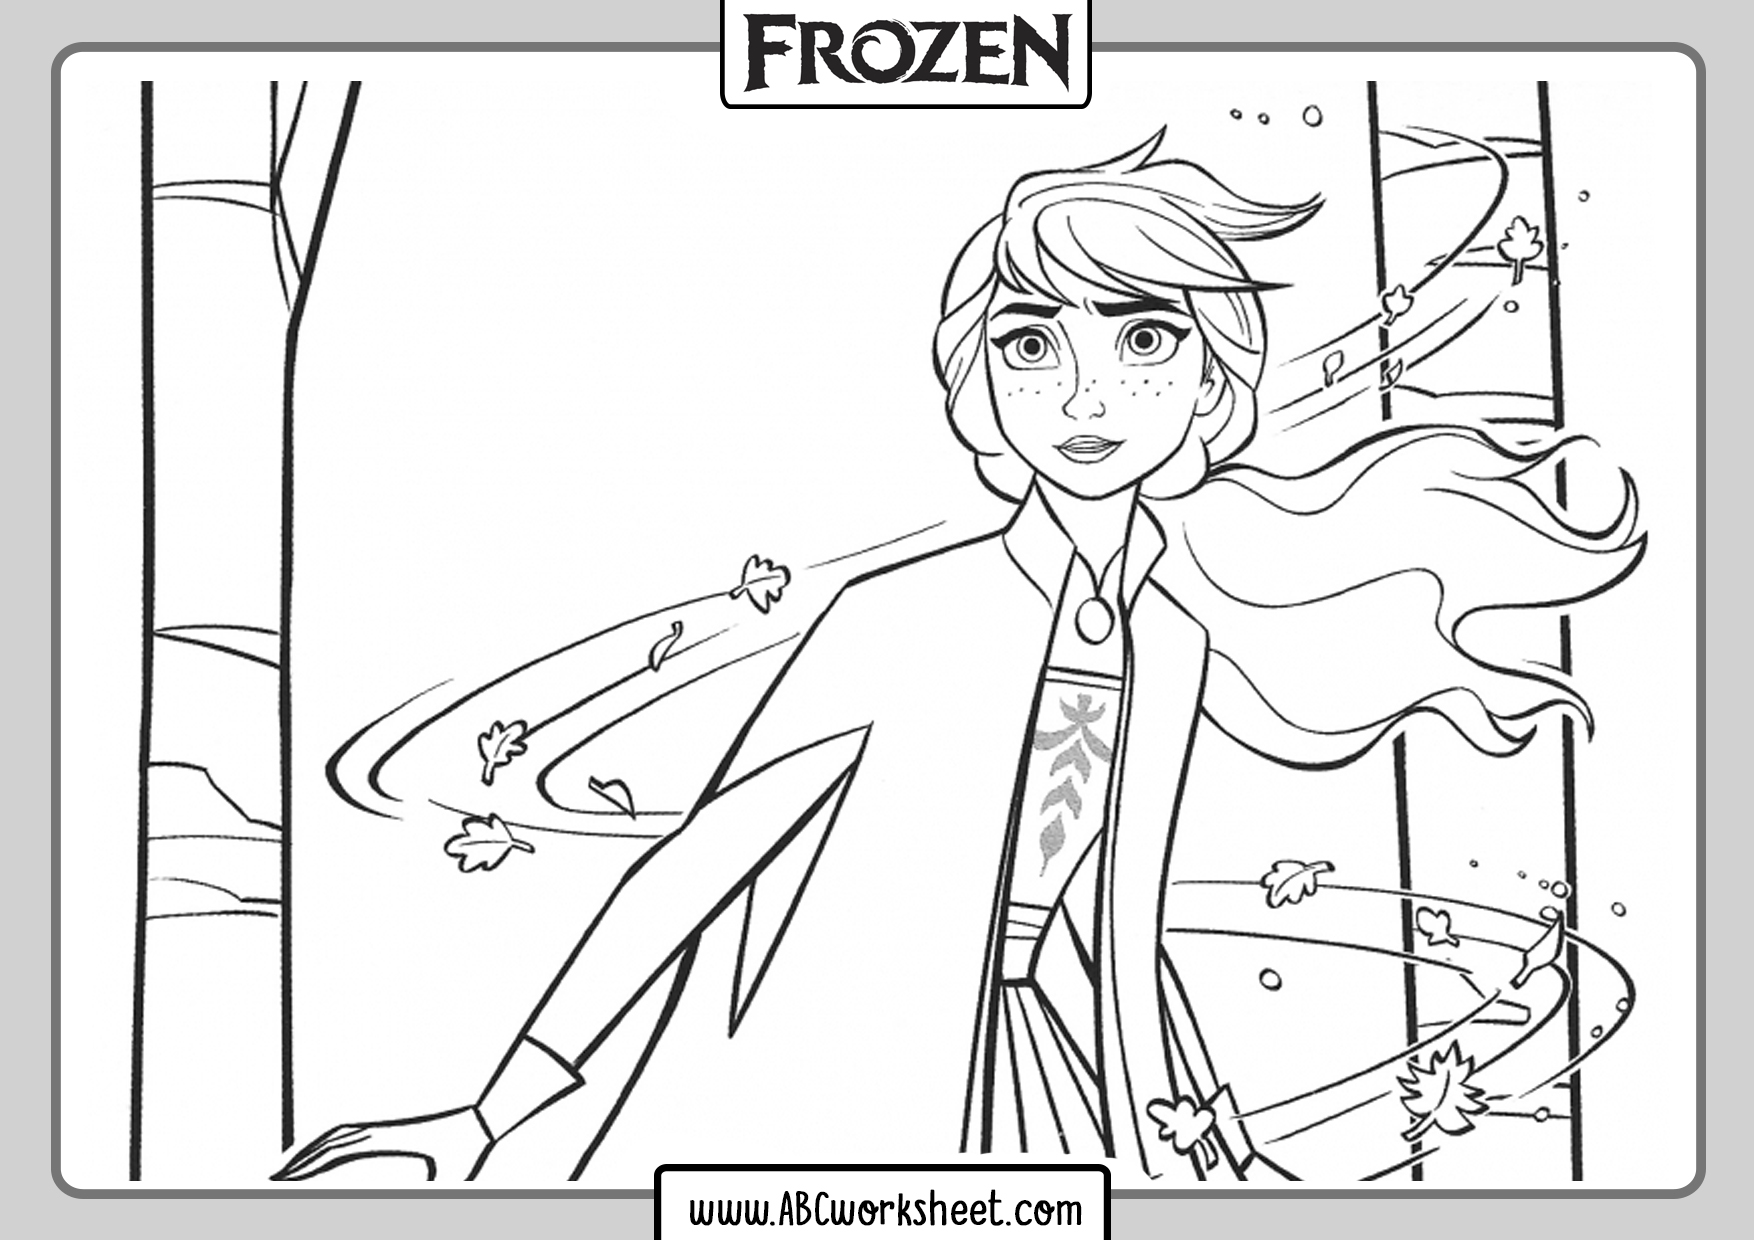 Frozen 2 Printable Coloring Pages for Kids